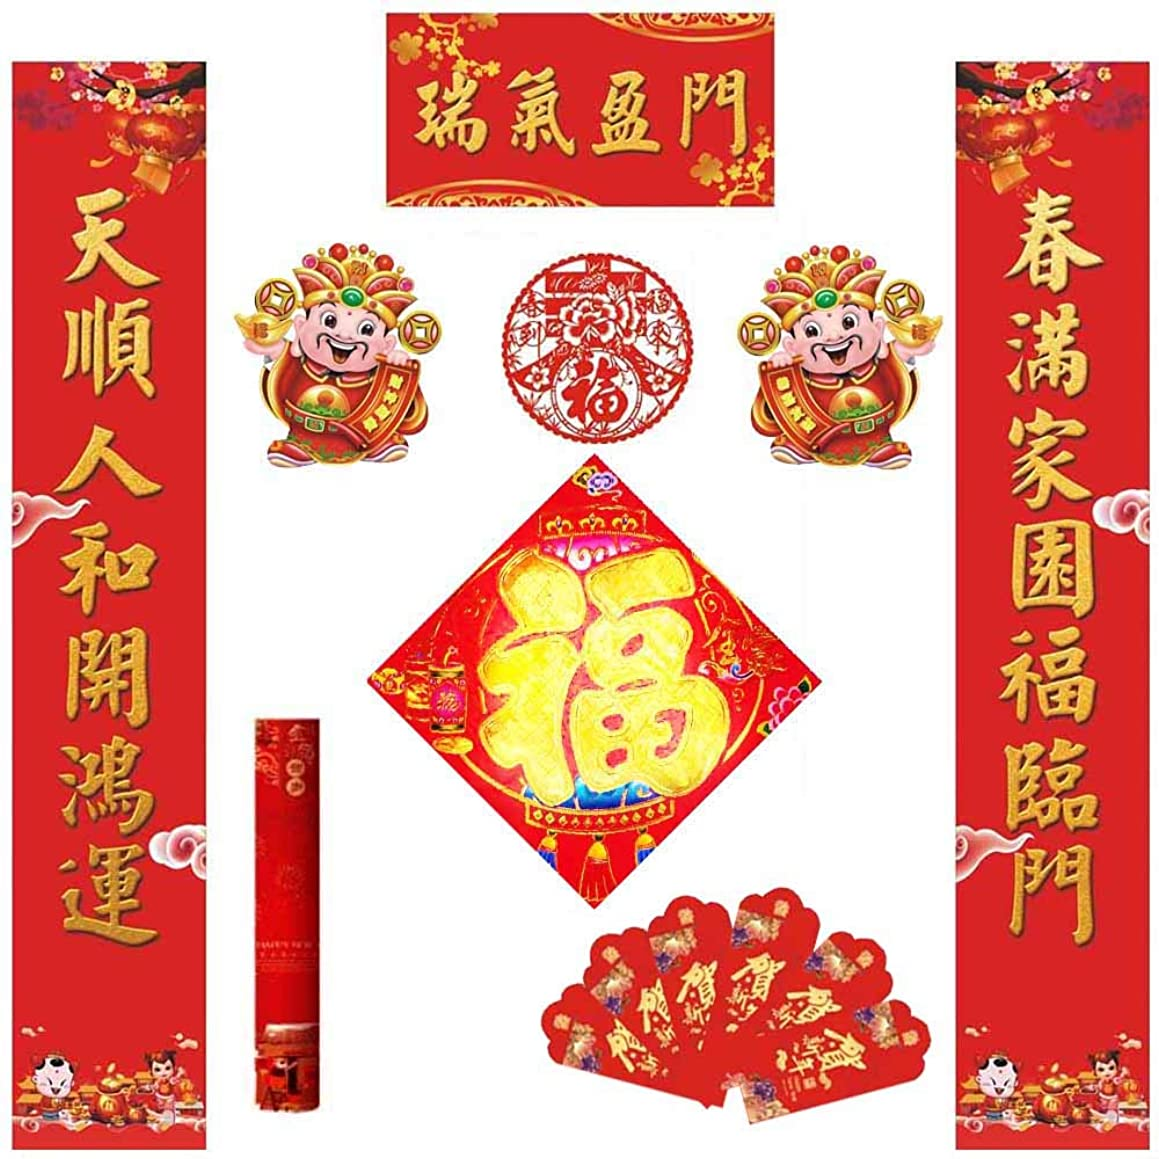 Chinese Couplet Set for 2019 Chinese Pig Year Spring Festival, Chun Lian/Door Sticker/Red Envelopes/Fu Paper/Window Paper, 1.2 Meter Rui Qi Ying Men